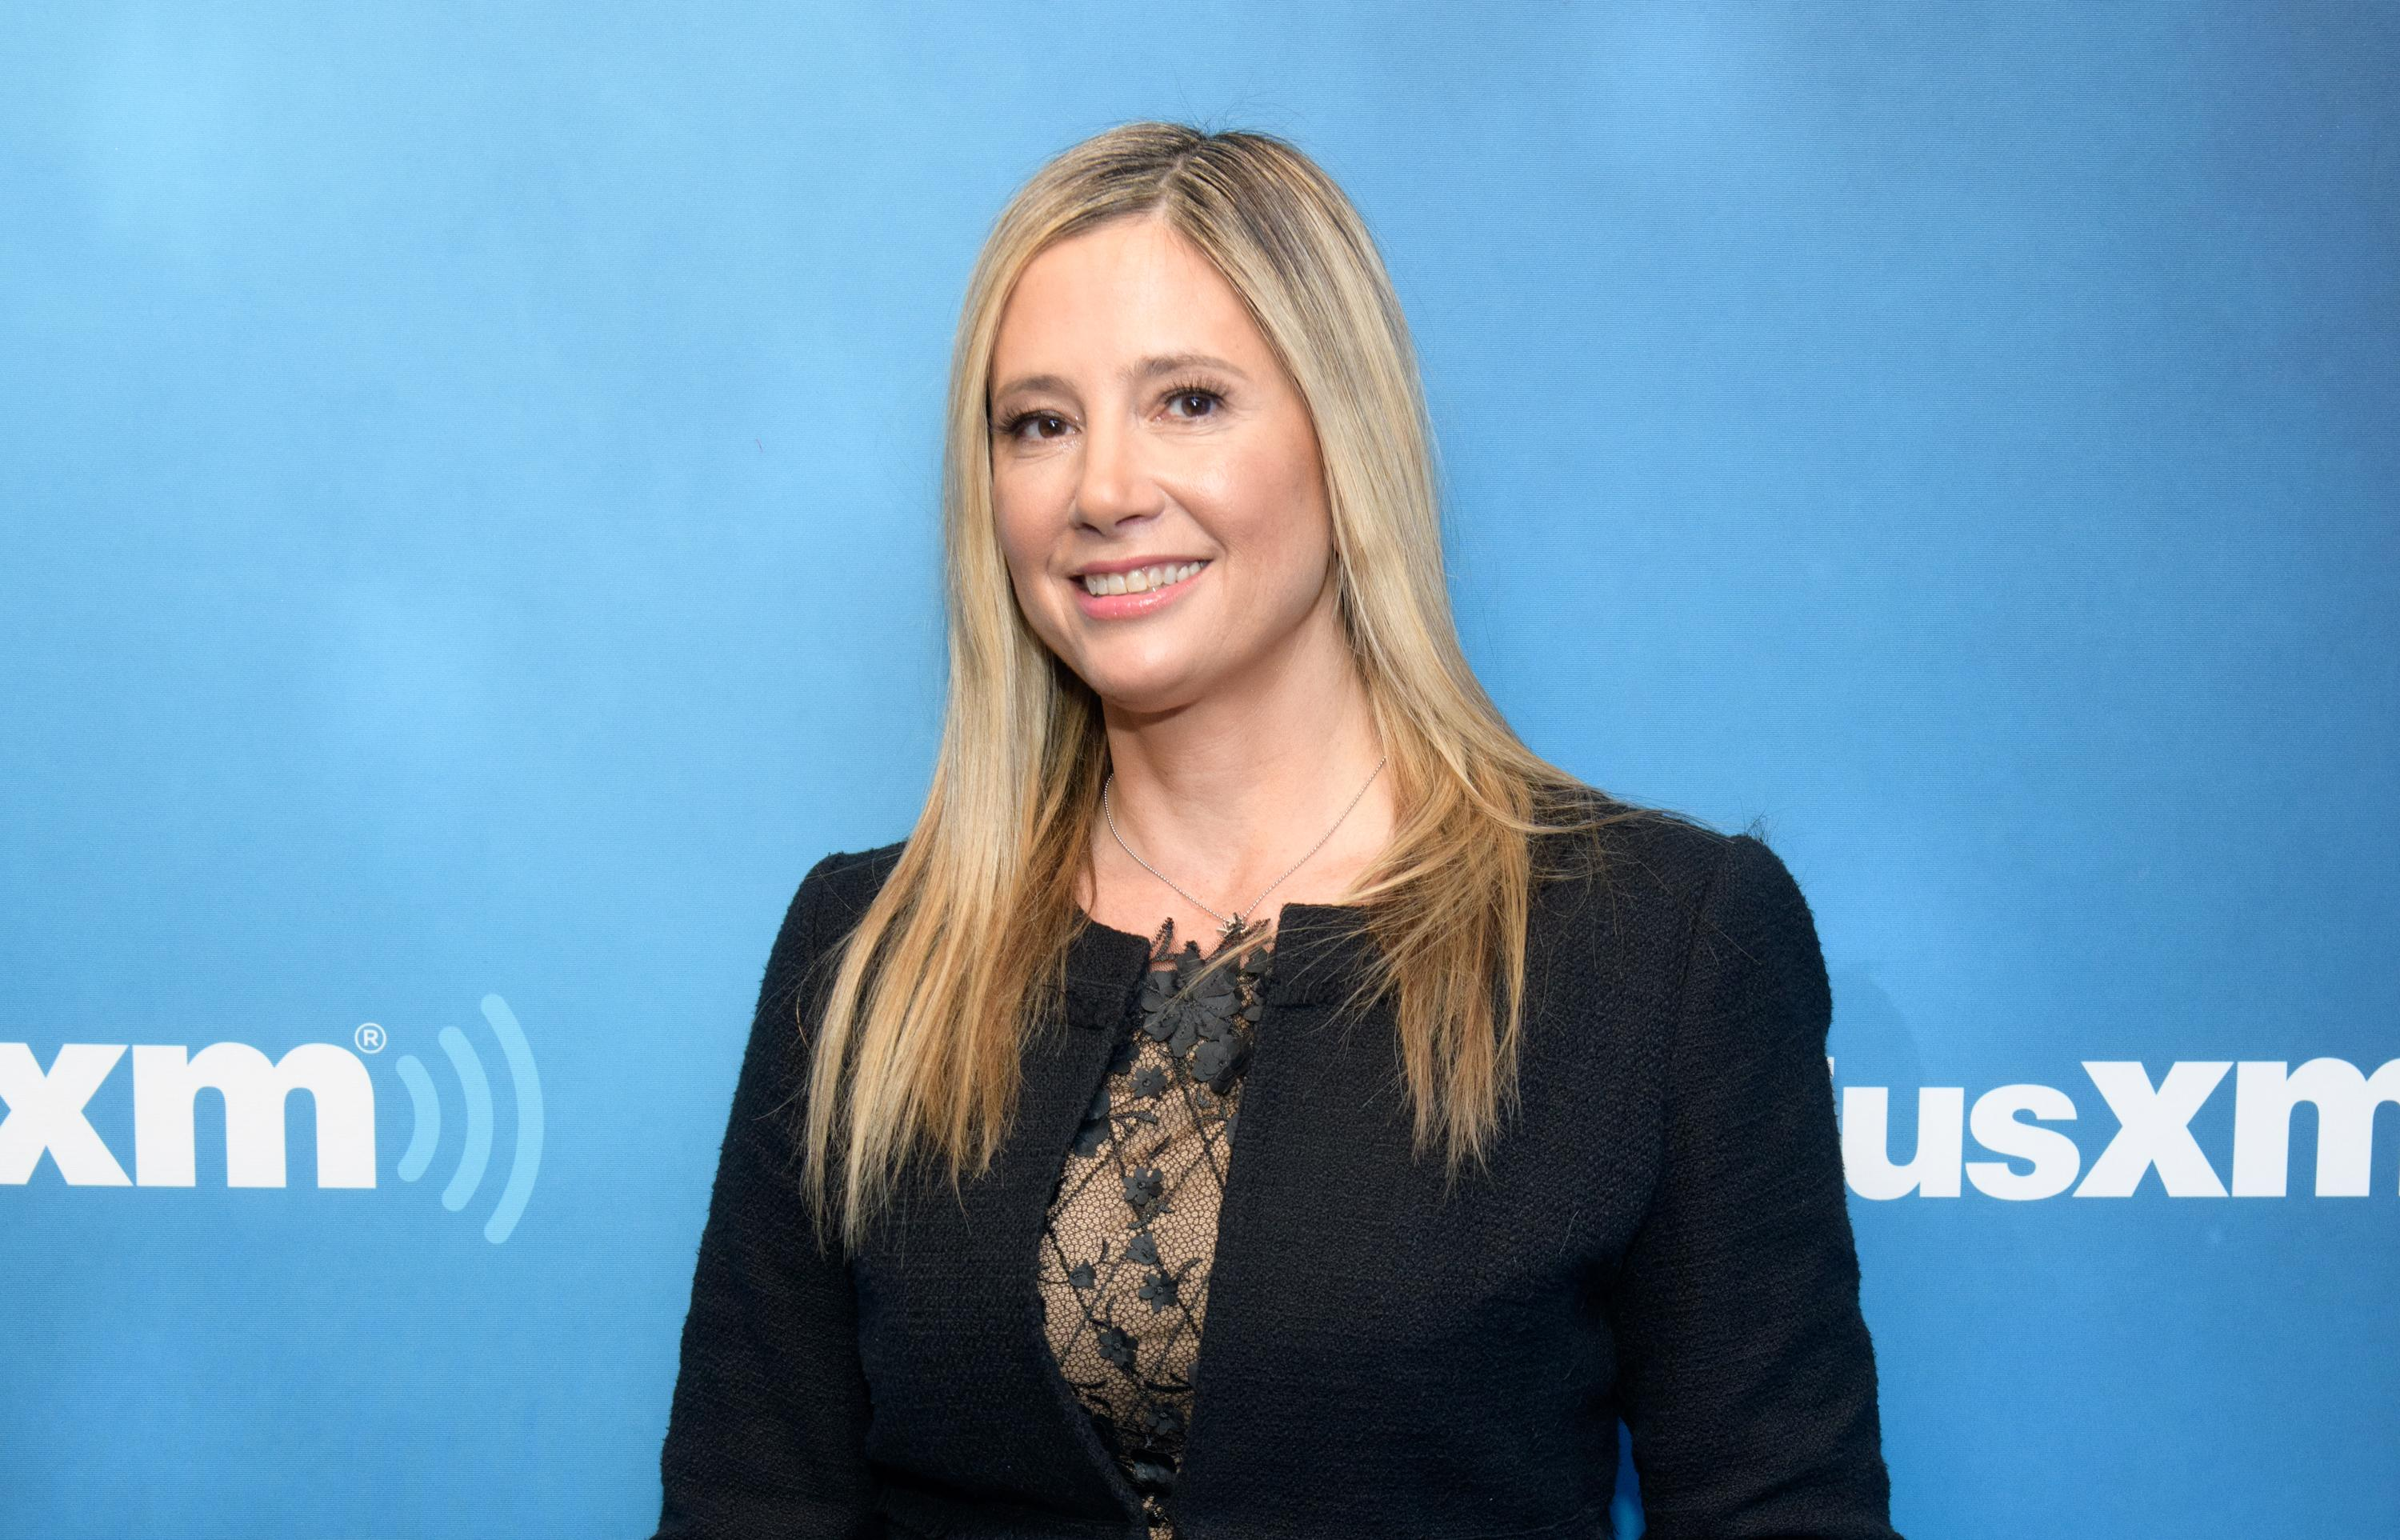 Mira Sorvino poses at the SiriusXM Studios on Nov. 5, 2018, in New York City.